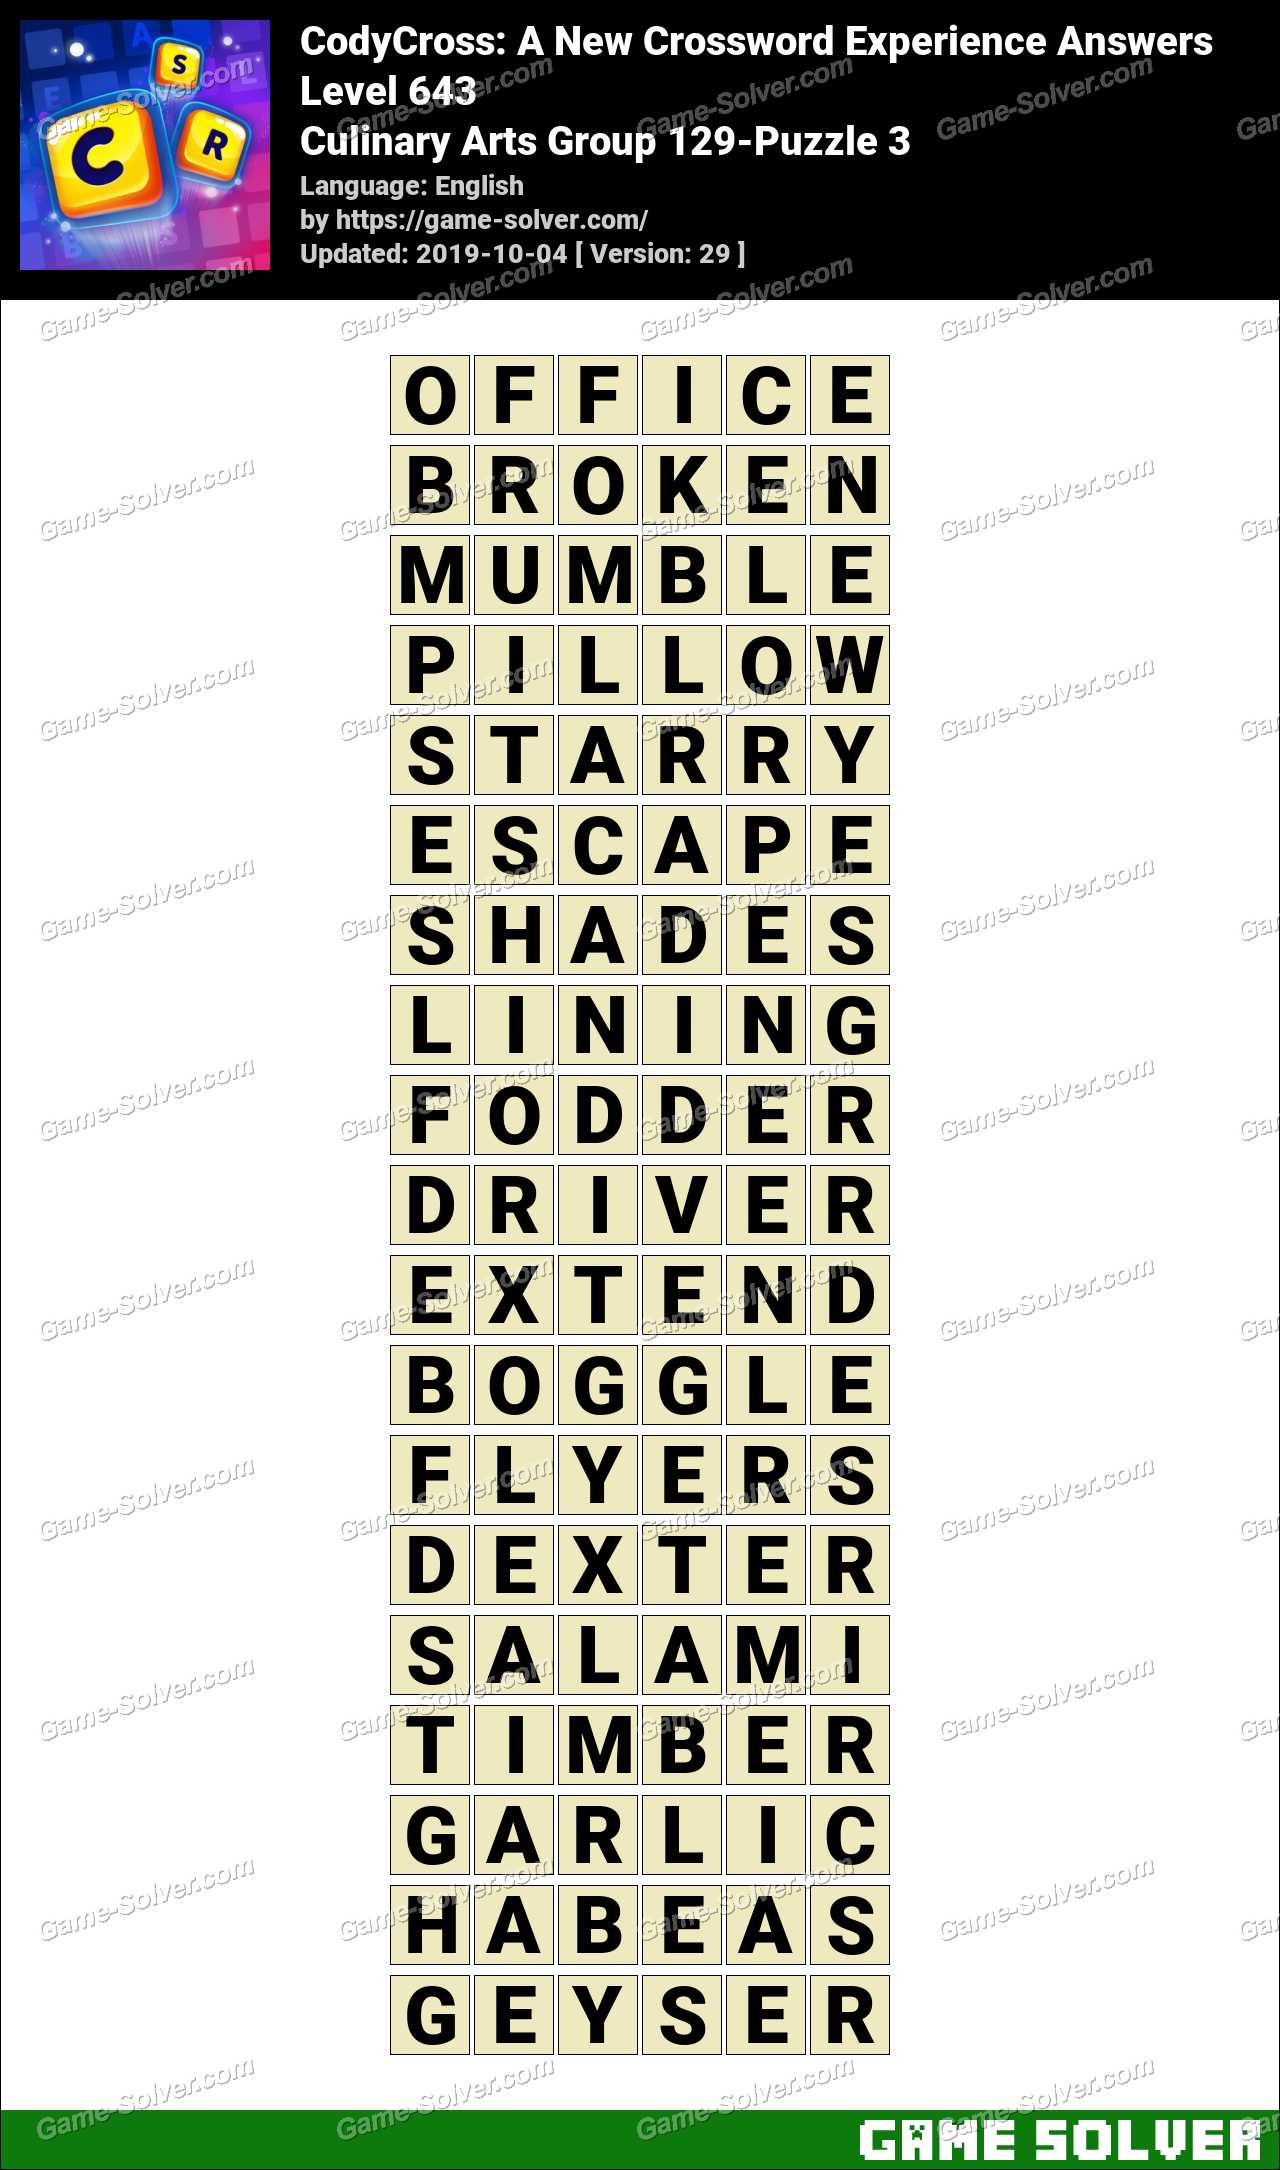 CodyCross Culinary Arts Group 129-Puzzle 3 Answers